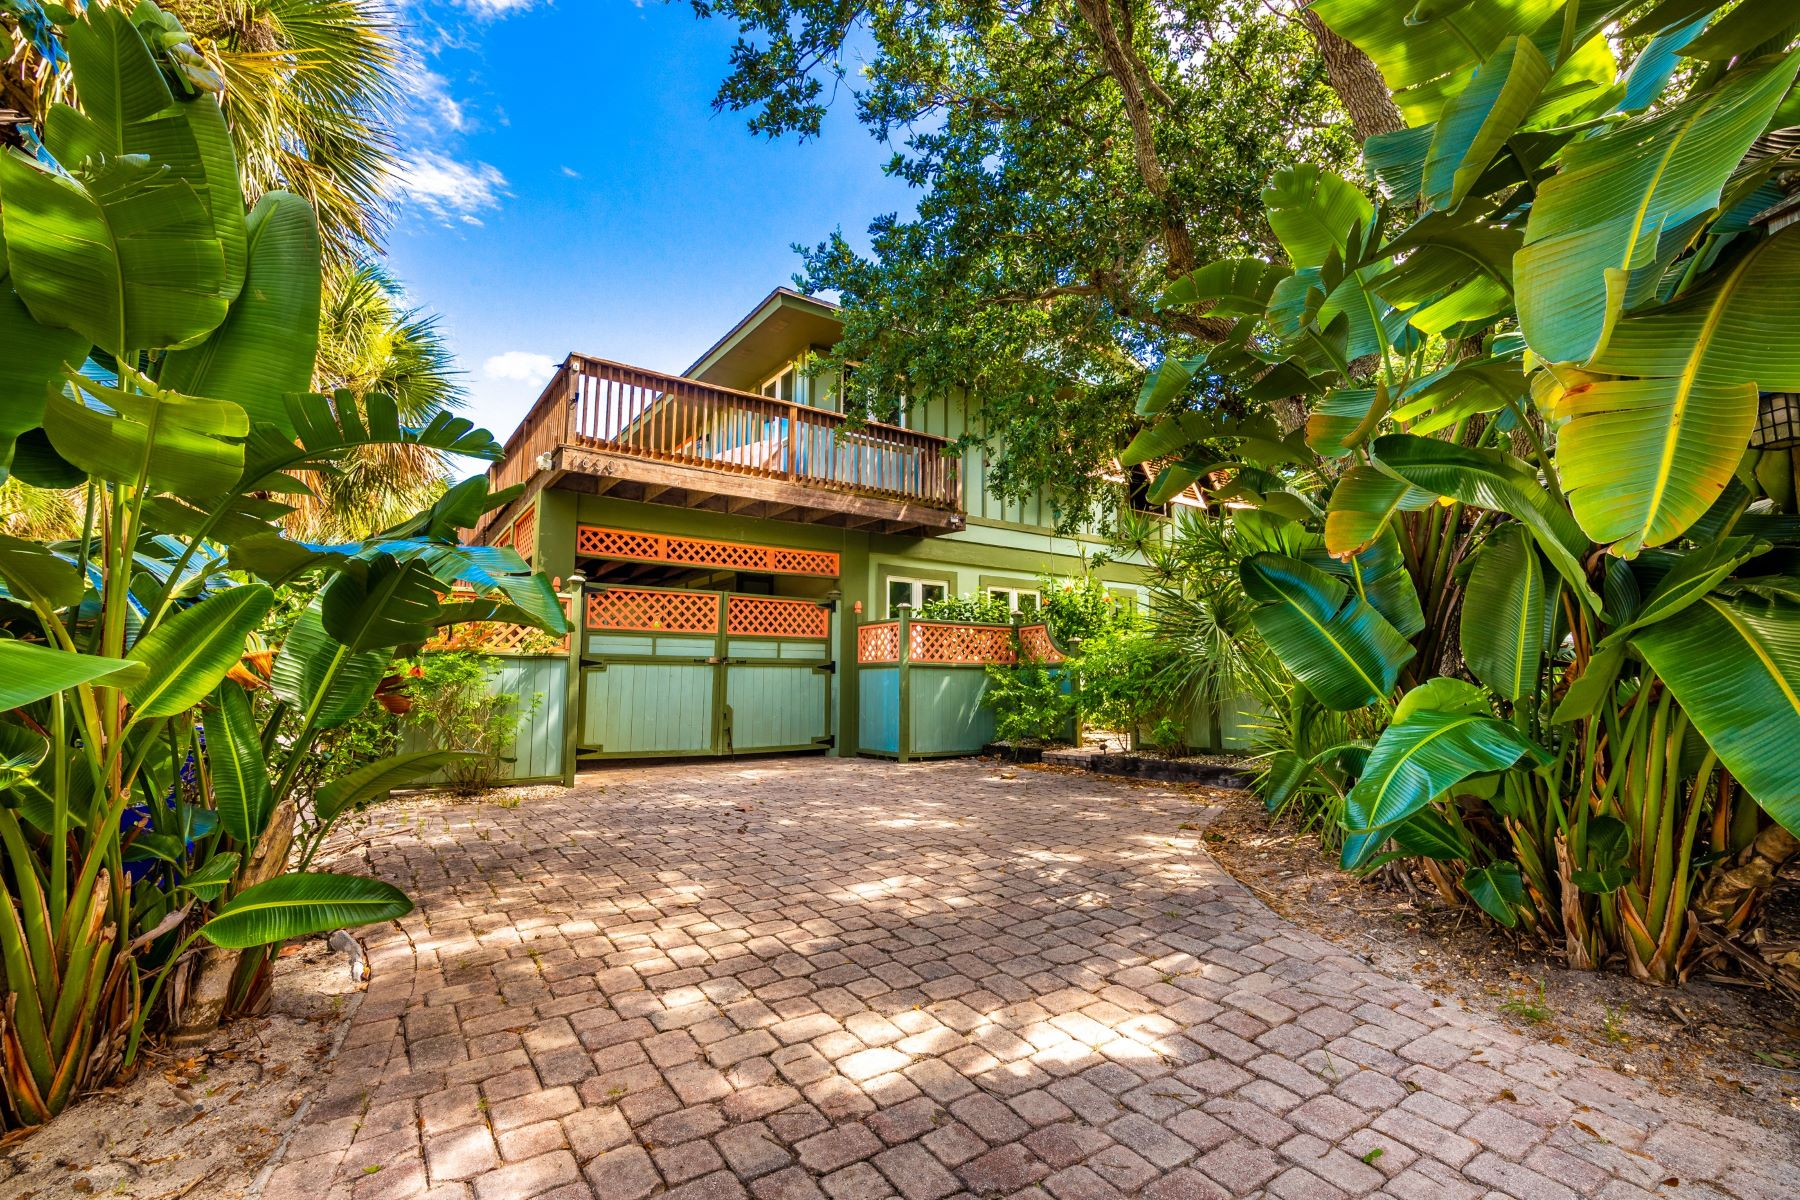 Tropical Home in Tranquil & Quiet Setting 1830 E Cayman Road Vero Beach, Florida 32963 Vereinigte Staaten